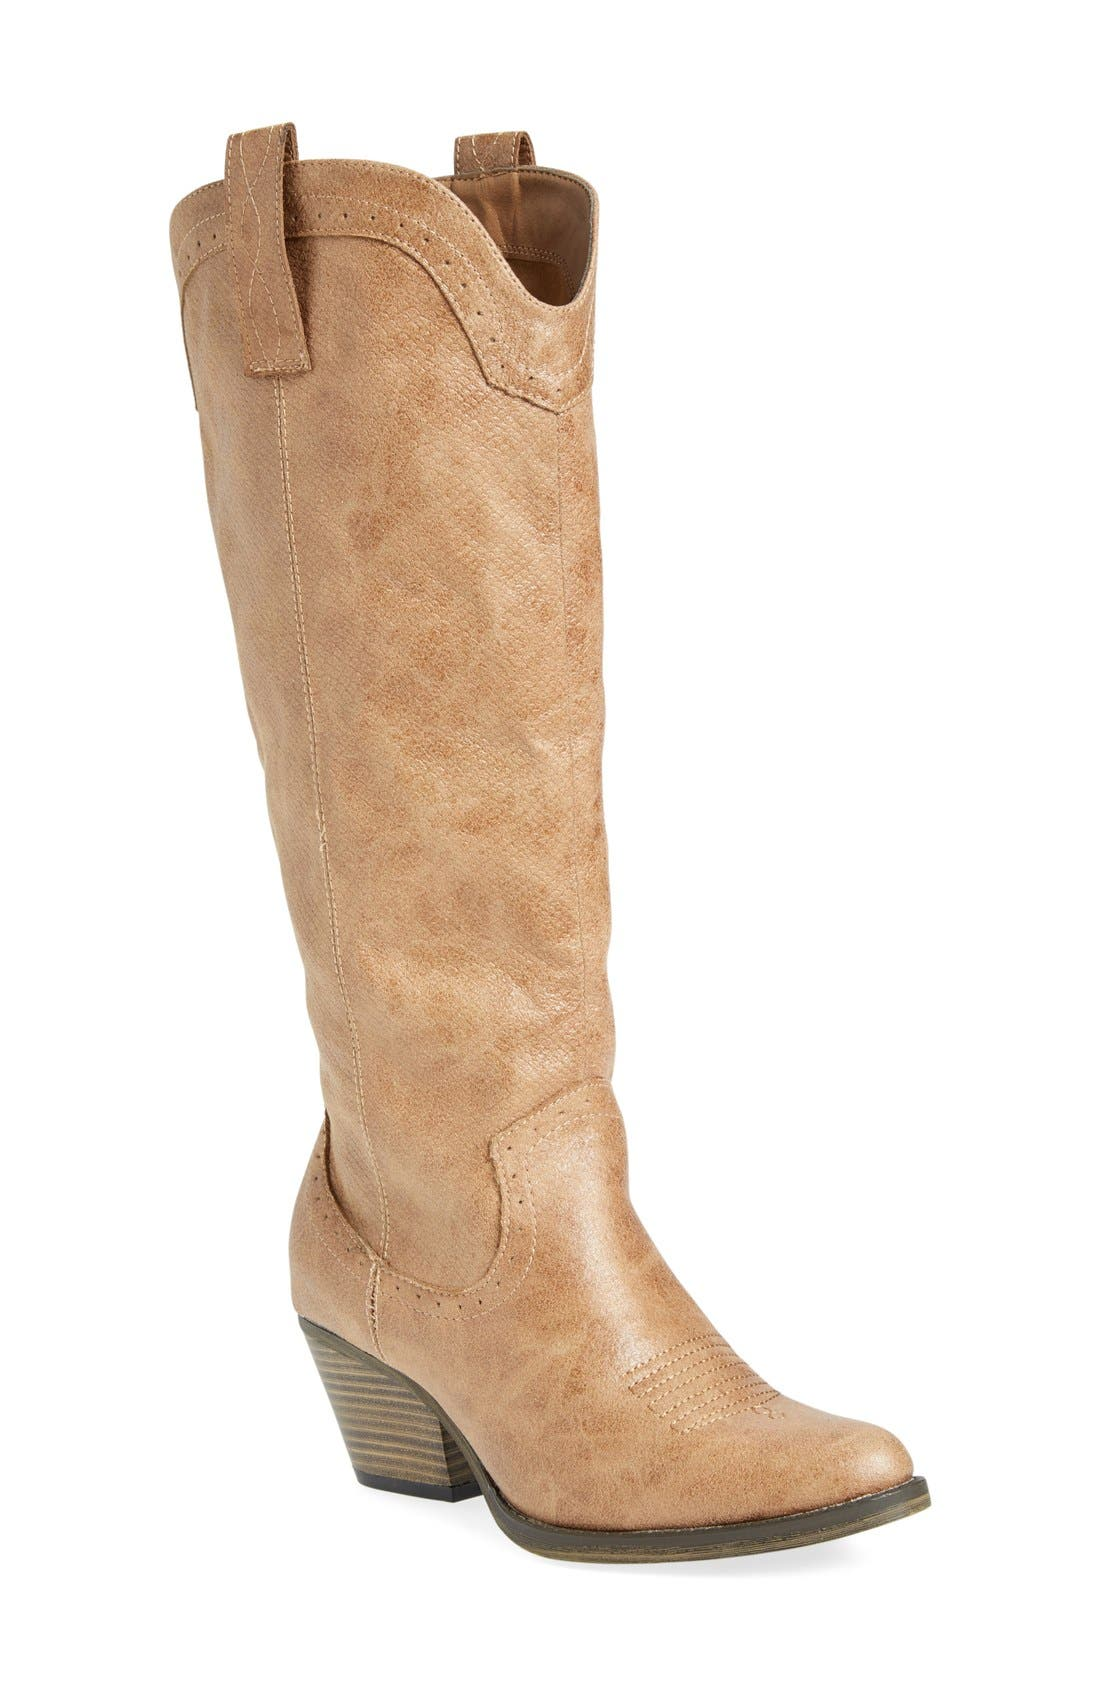 'Pawn' Boot,                             Main thumbnail 1, color,                             Natural Faux Leather